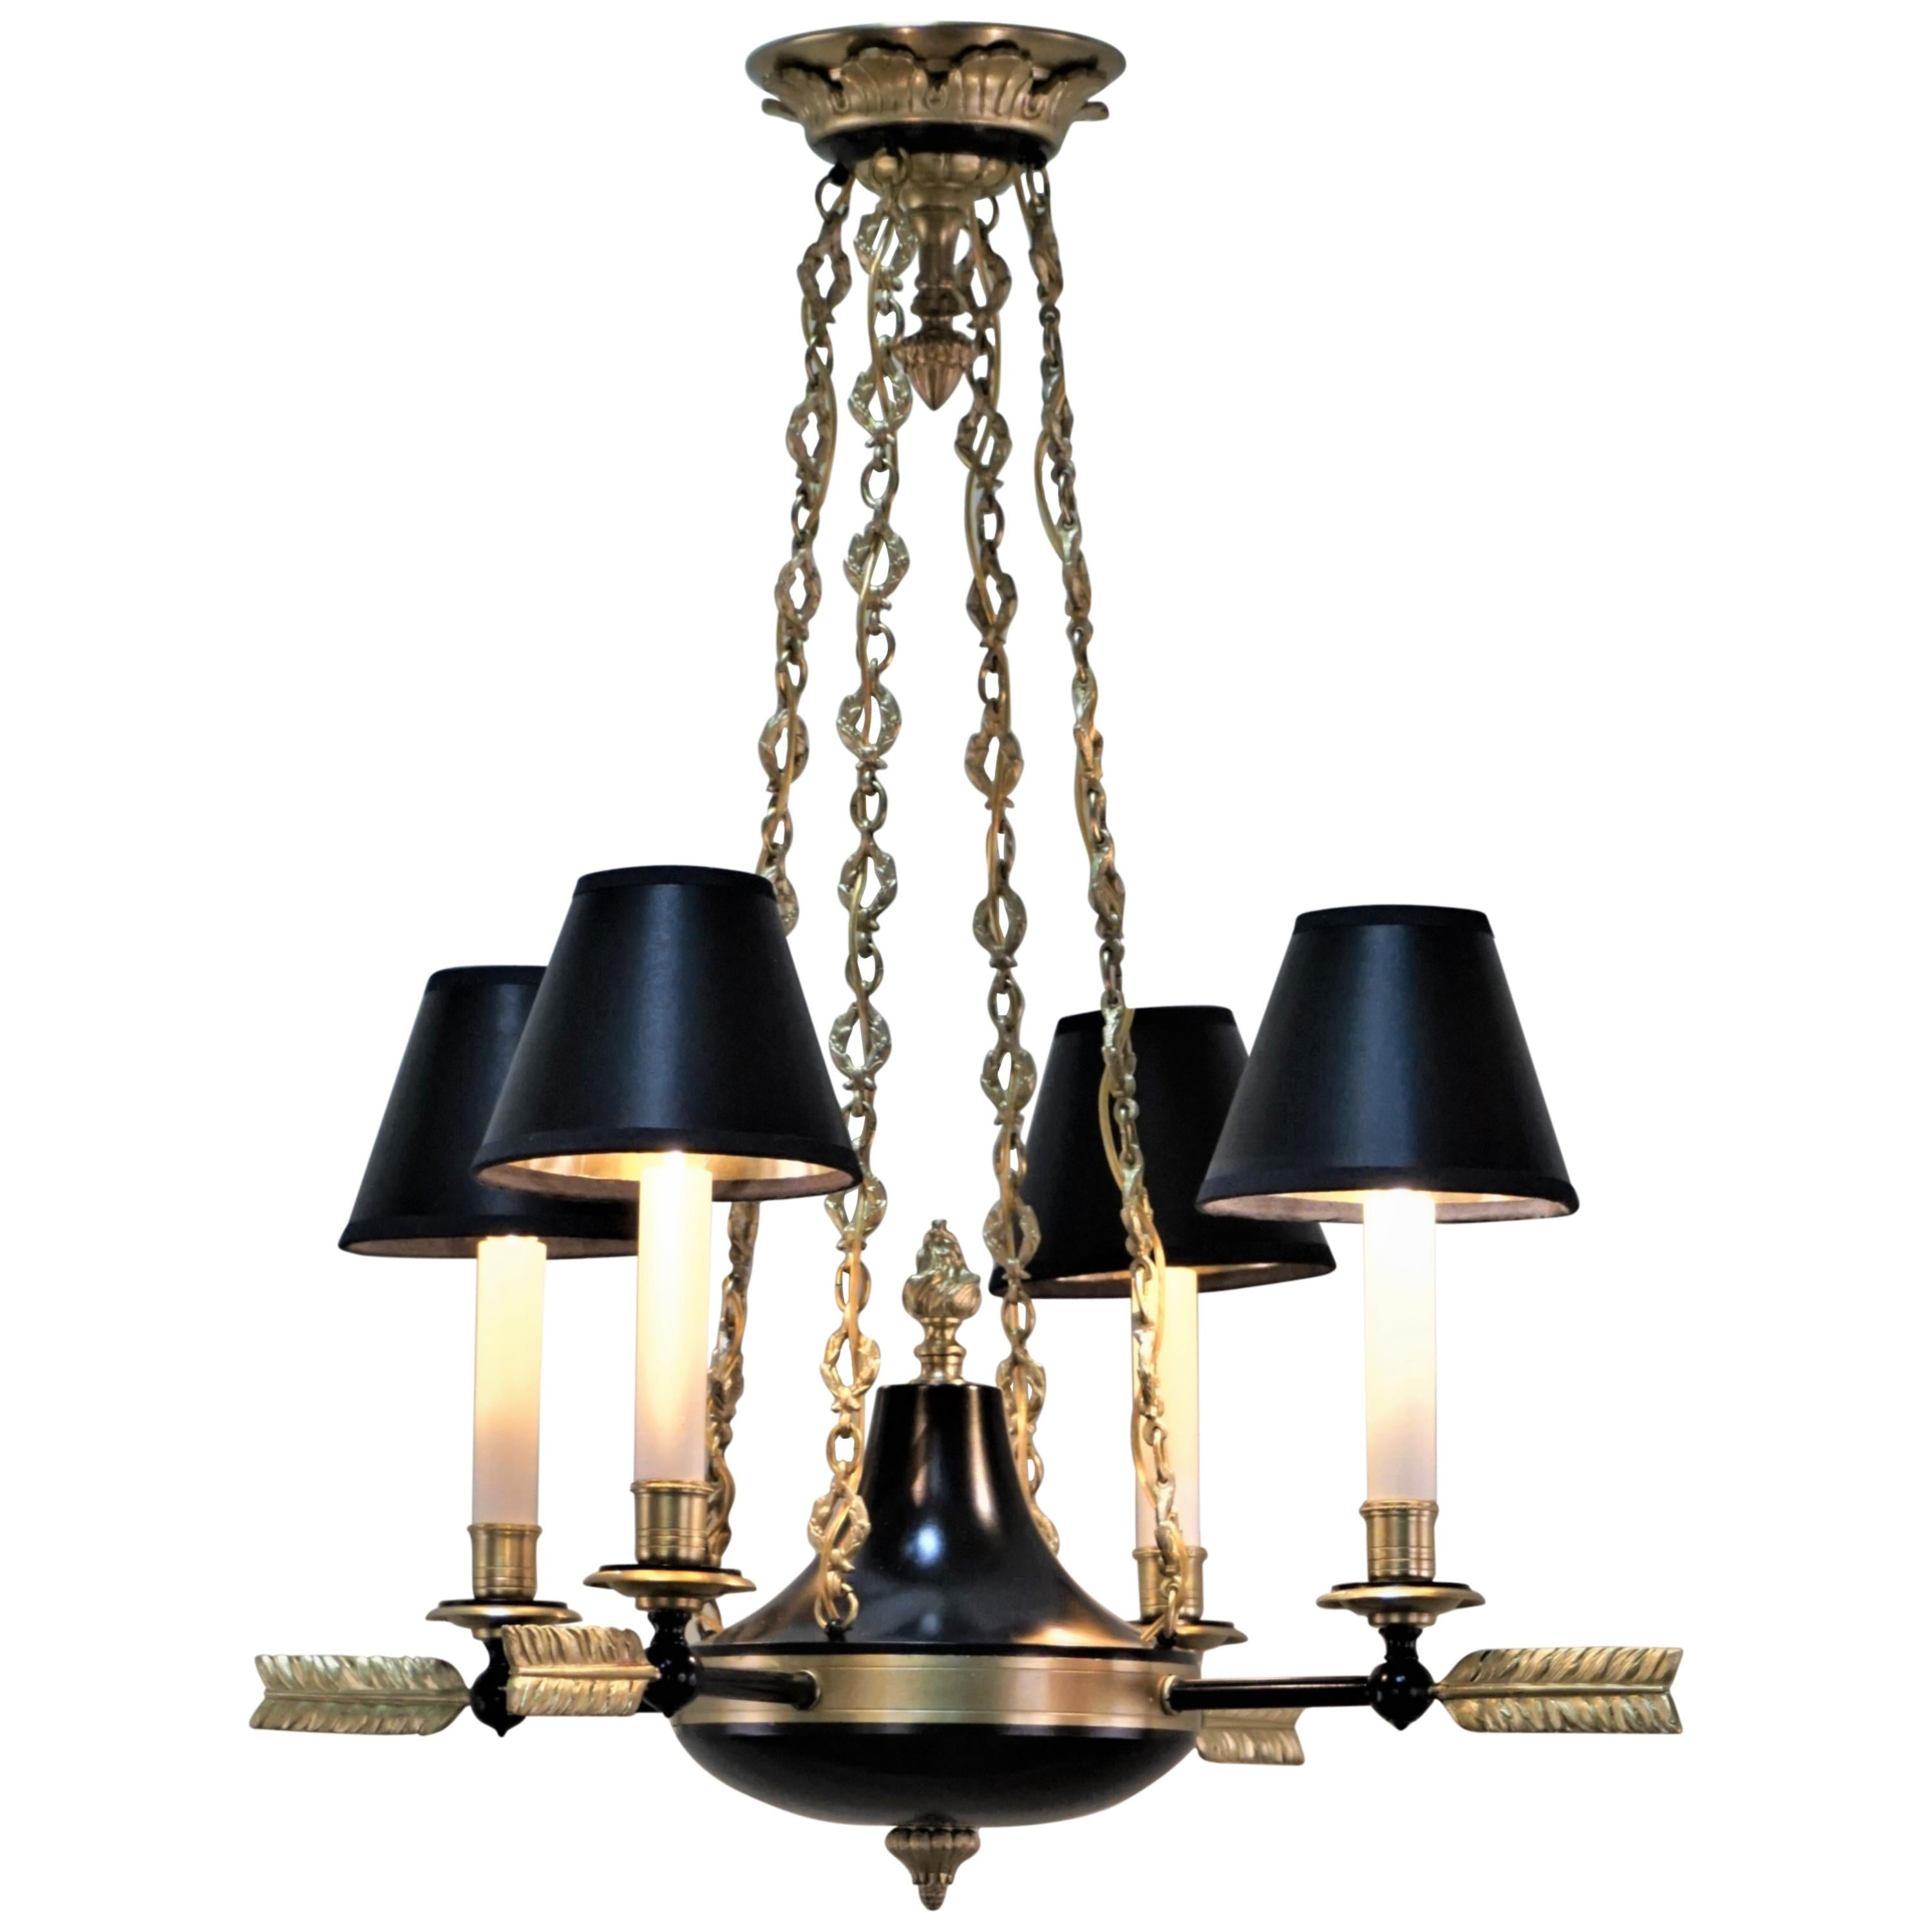 c94bff534ae0 Antique and Vintage Chandeliers and Pendants - 33